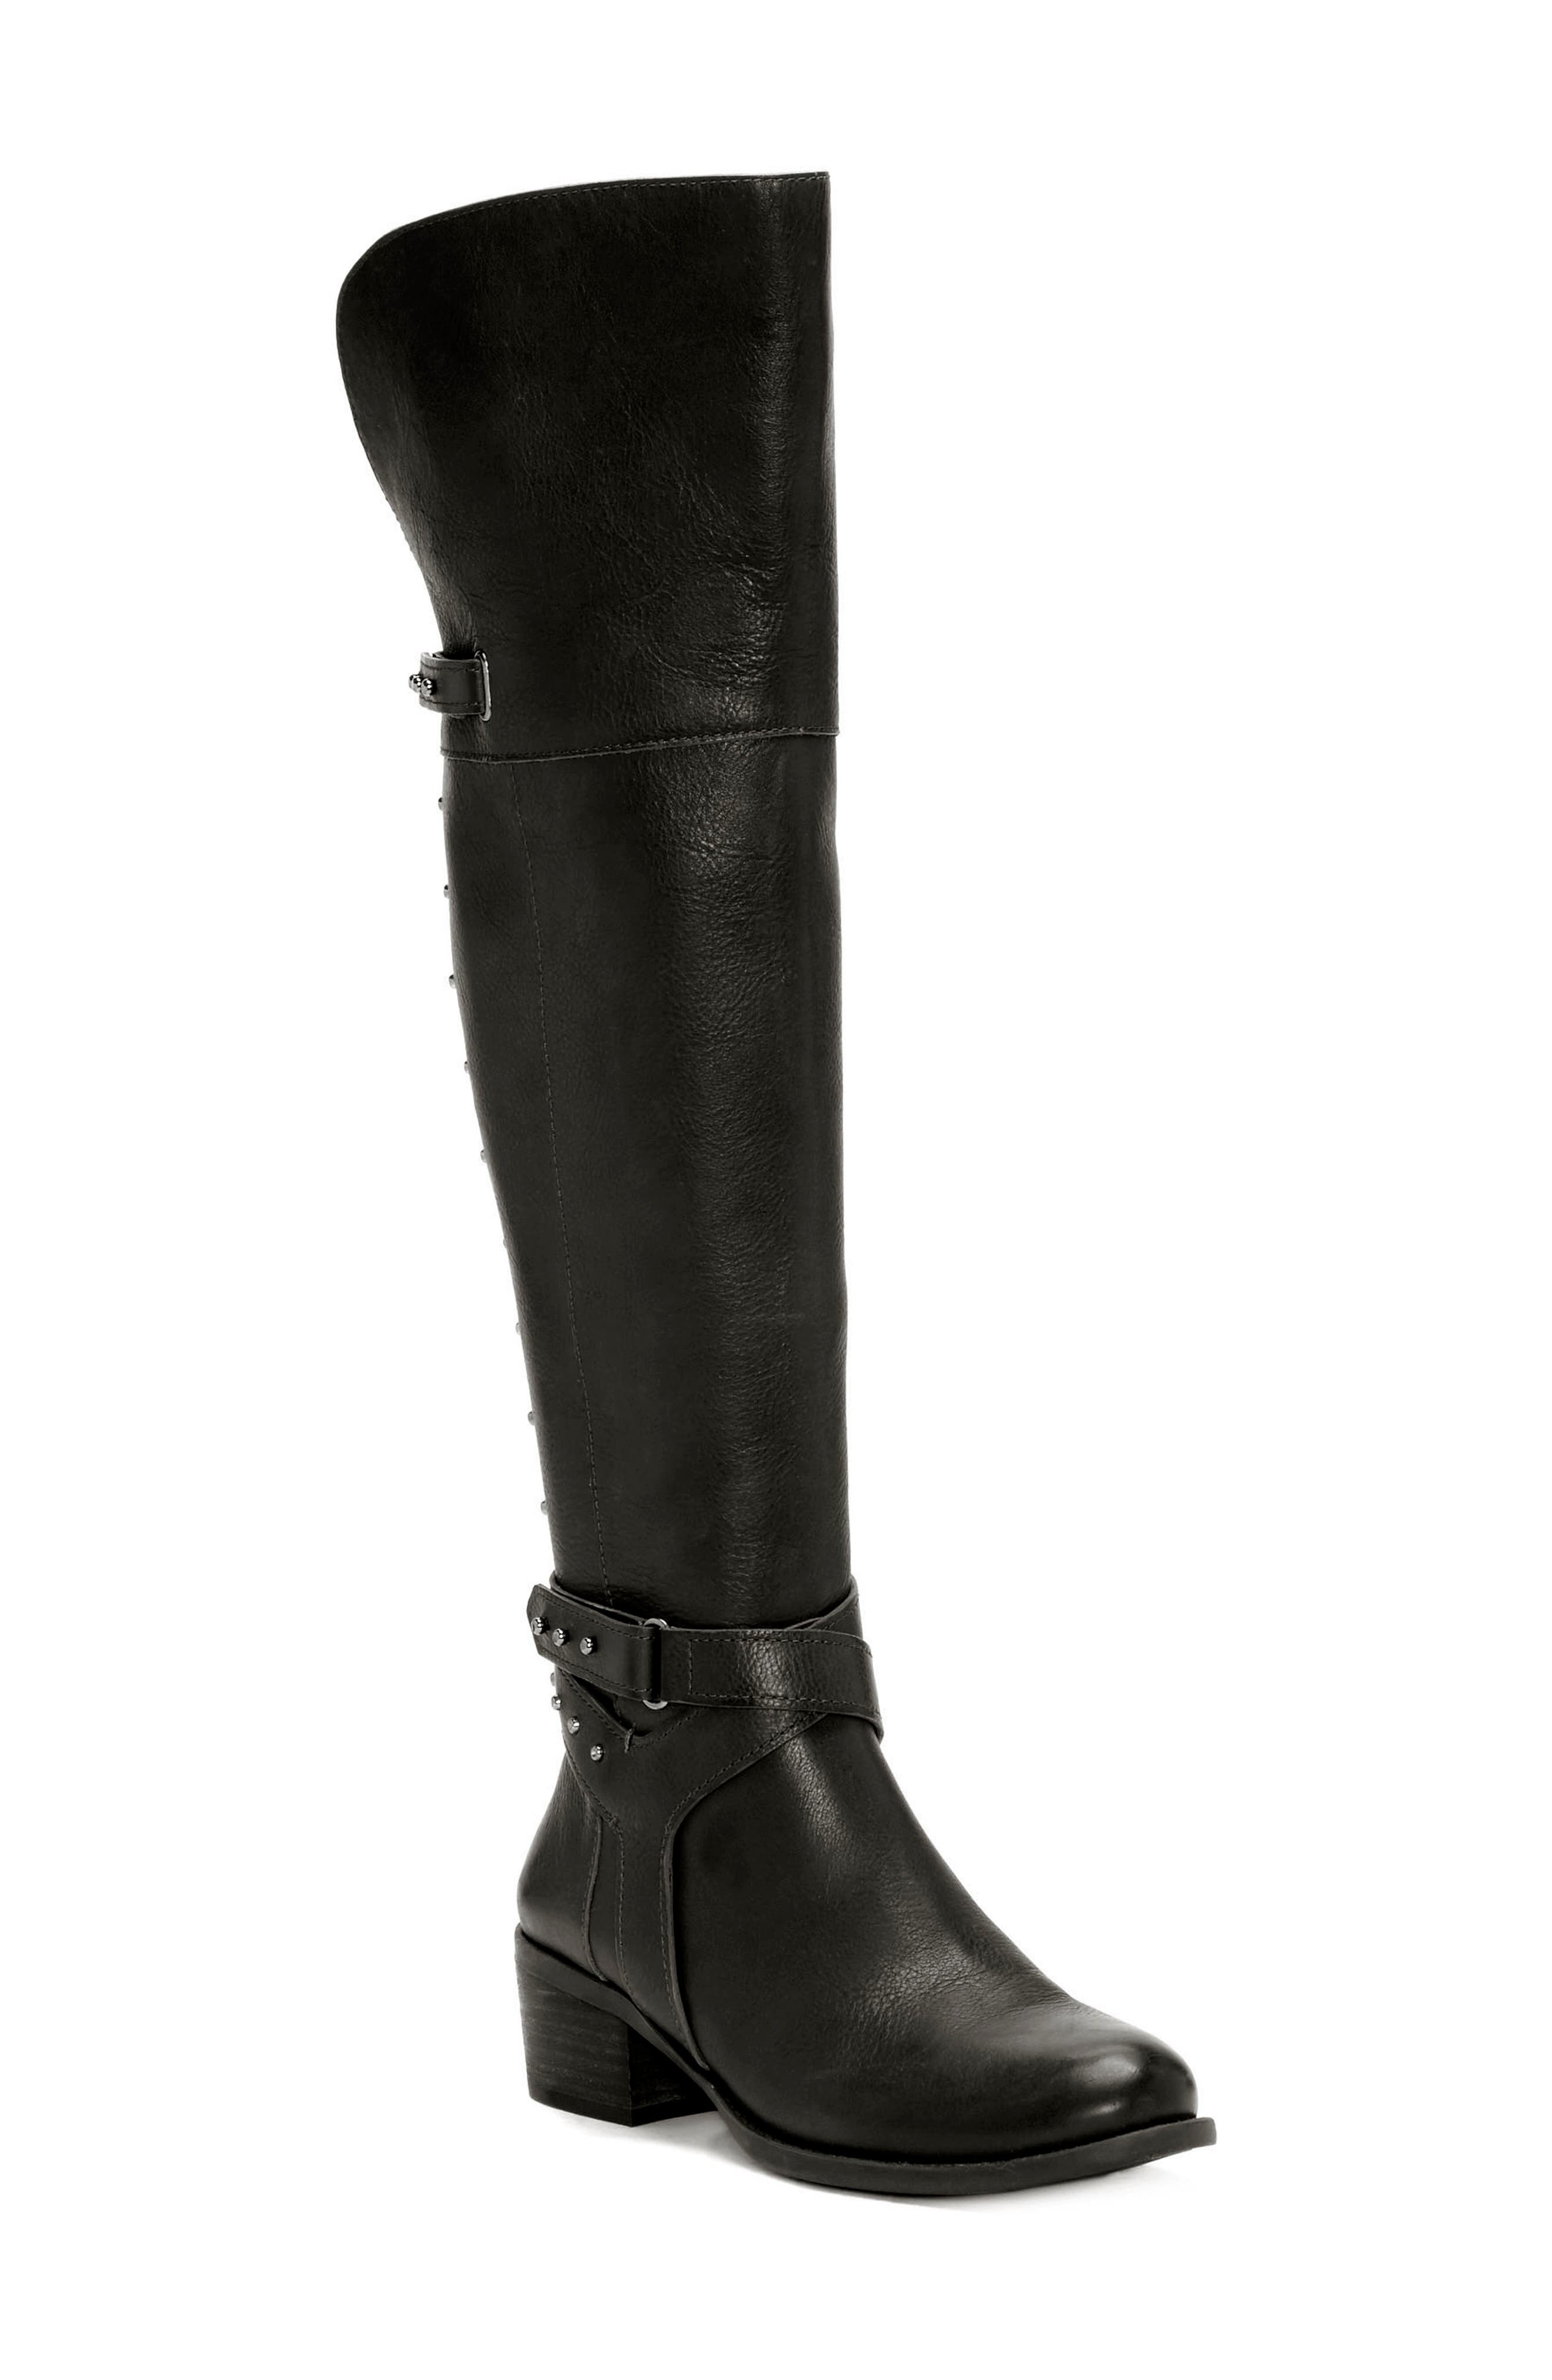 Bestant Over the Knee Boot,                             Main thumbnail 1, color,                             BLACK LEATHER WIDE CALF